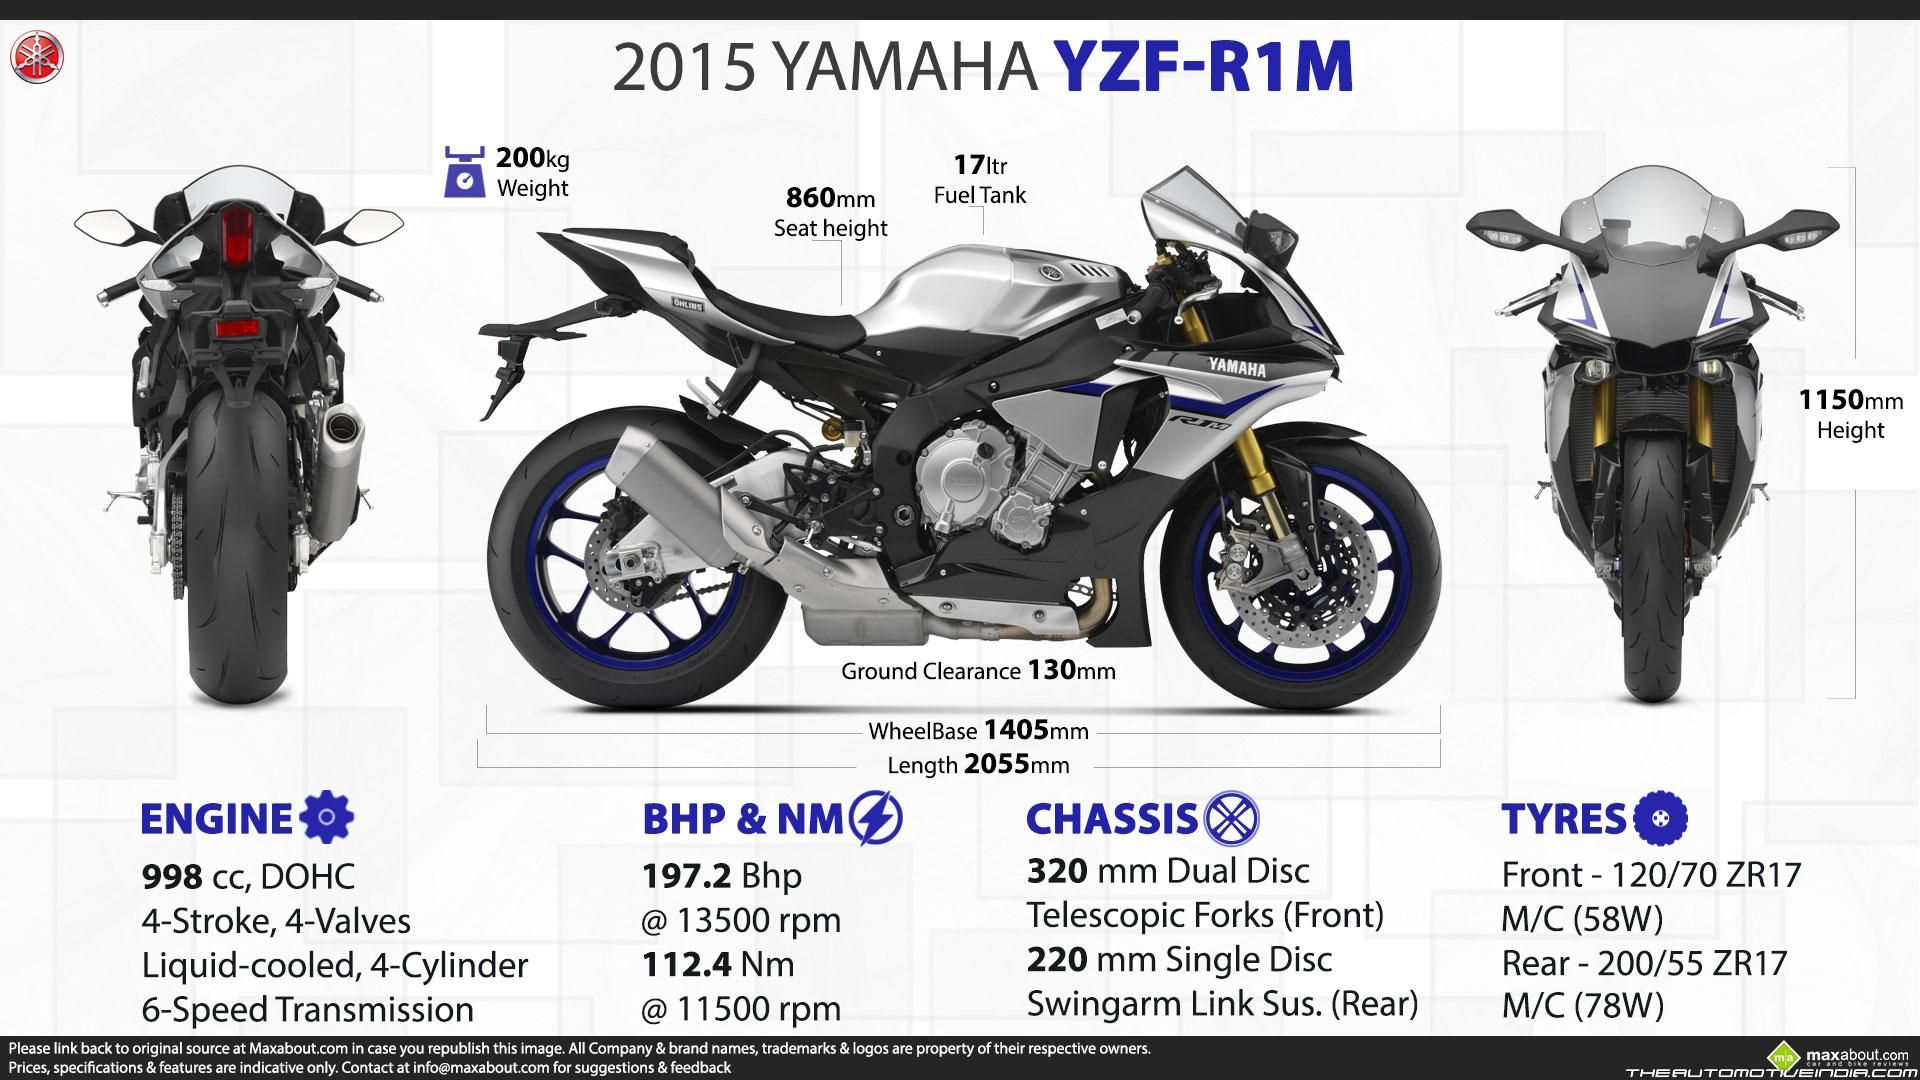 Yamaha YZFR and YZFRM prices revealed Motorcycle News